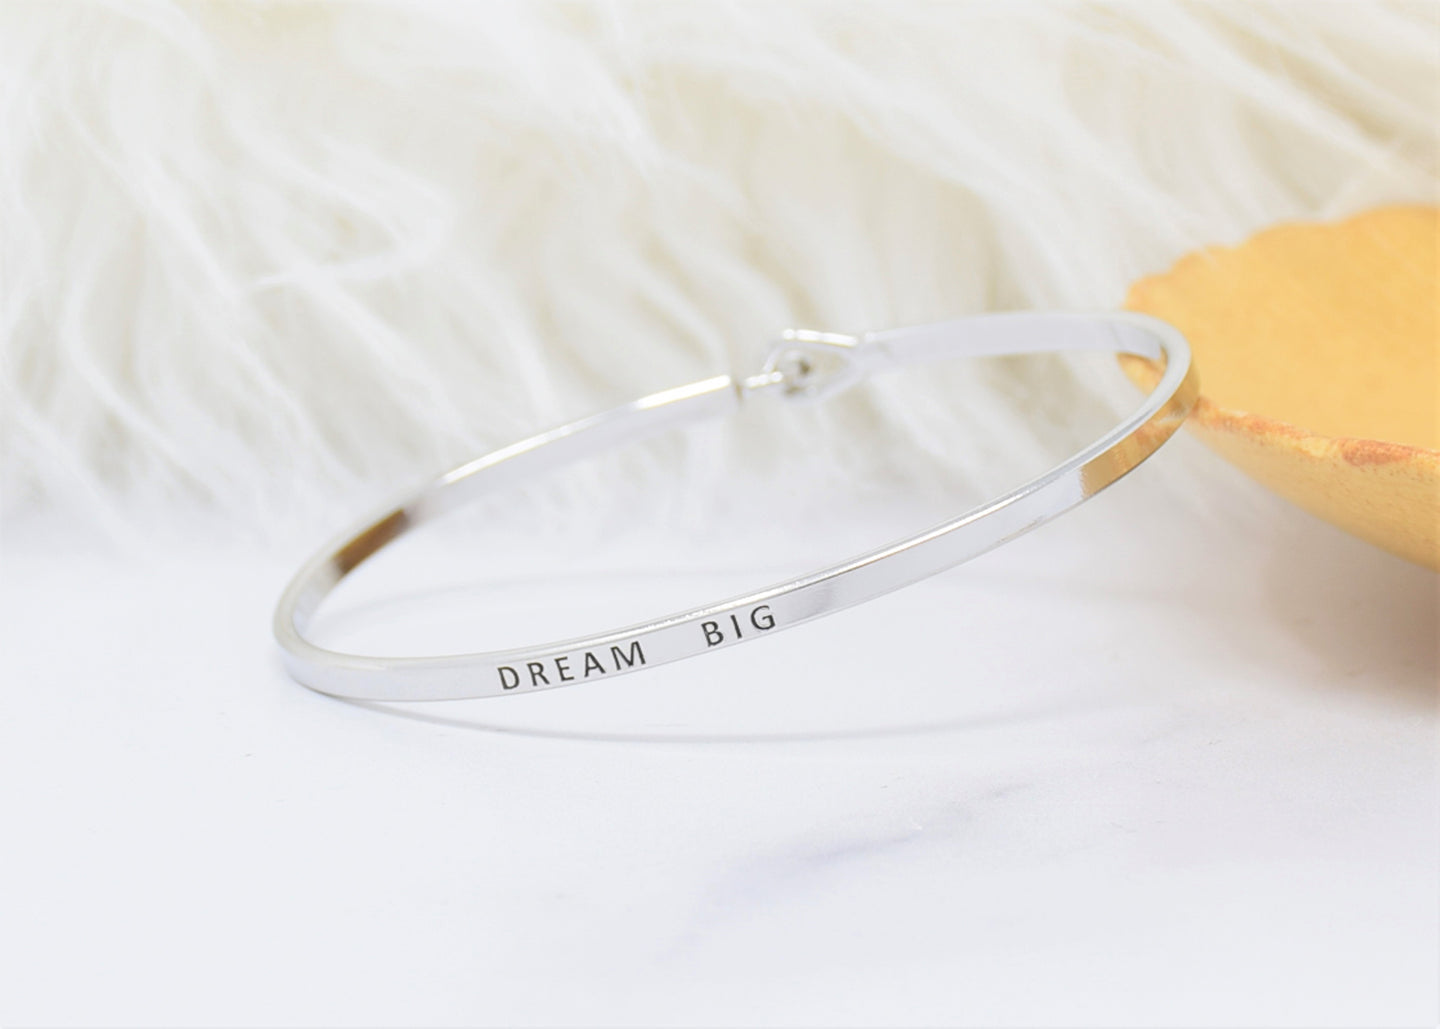 Dream Big - Bracelet Bangle with Message for Women Girl Daughter Wife Holiday Anniversary Special Gift